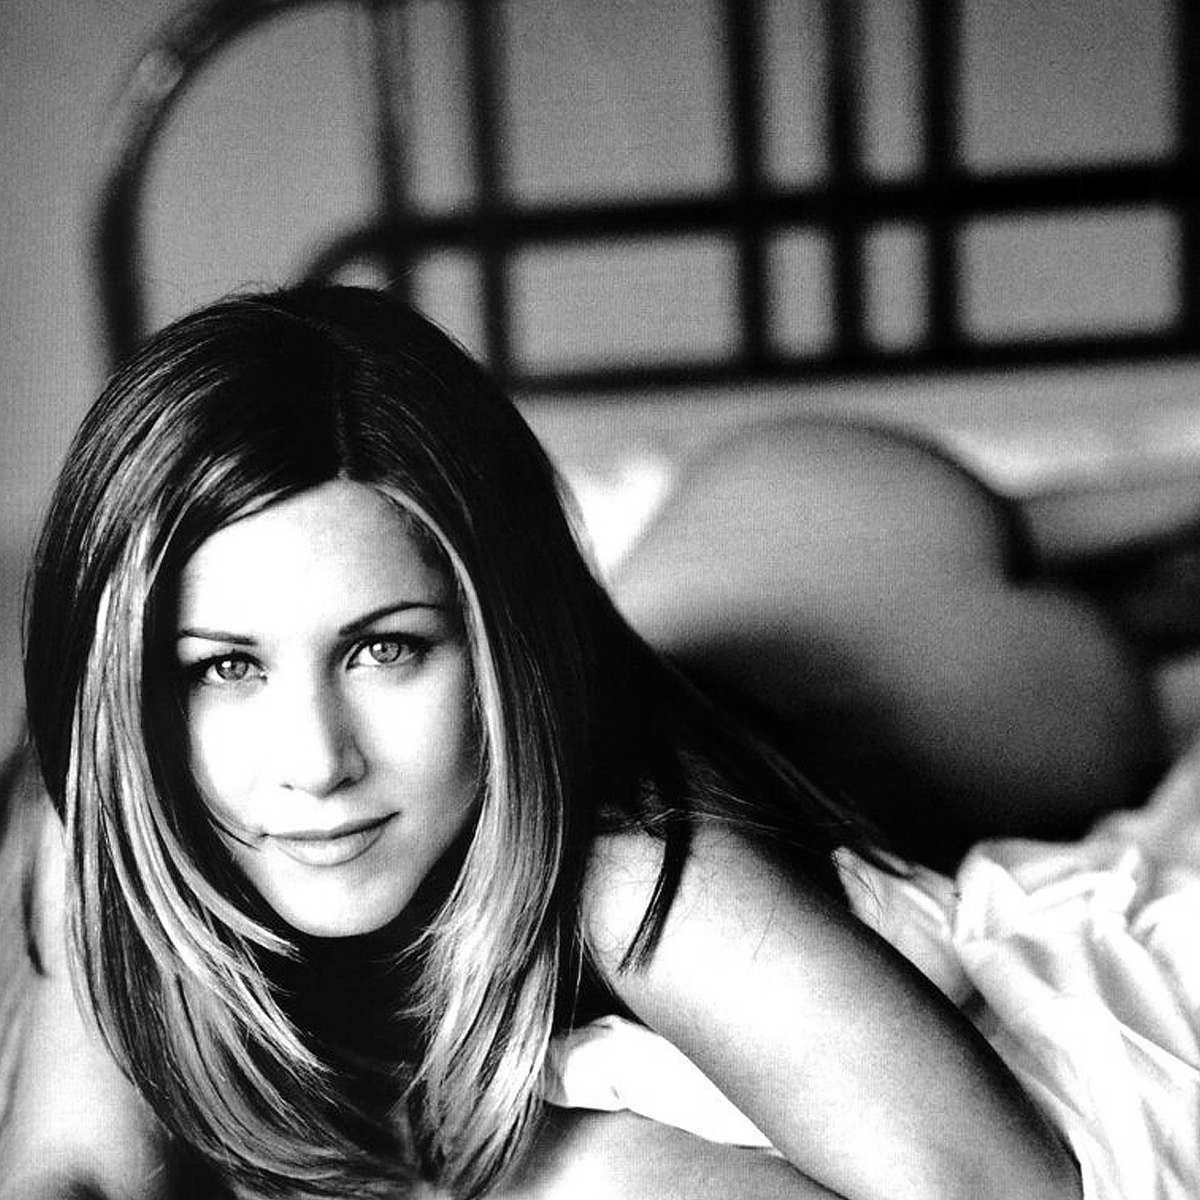 Jenifer Aniston Nude Pic 9